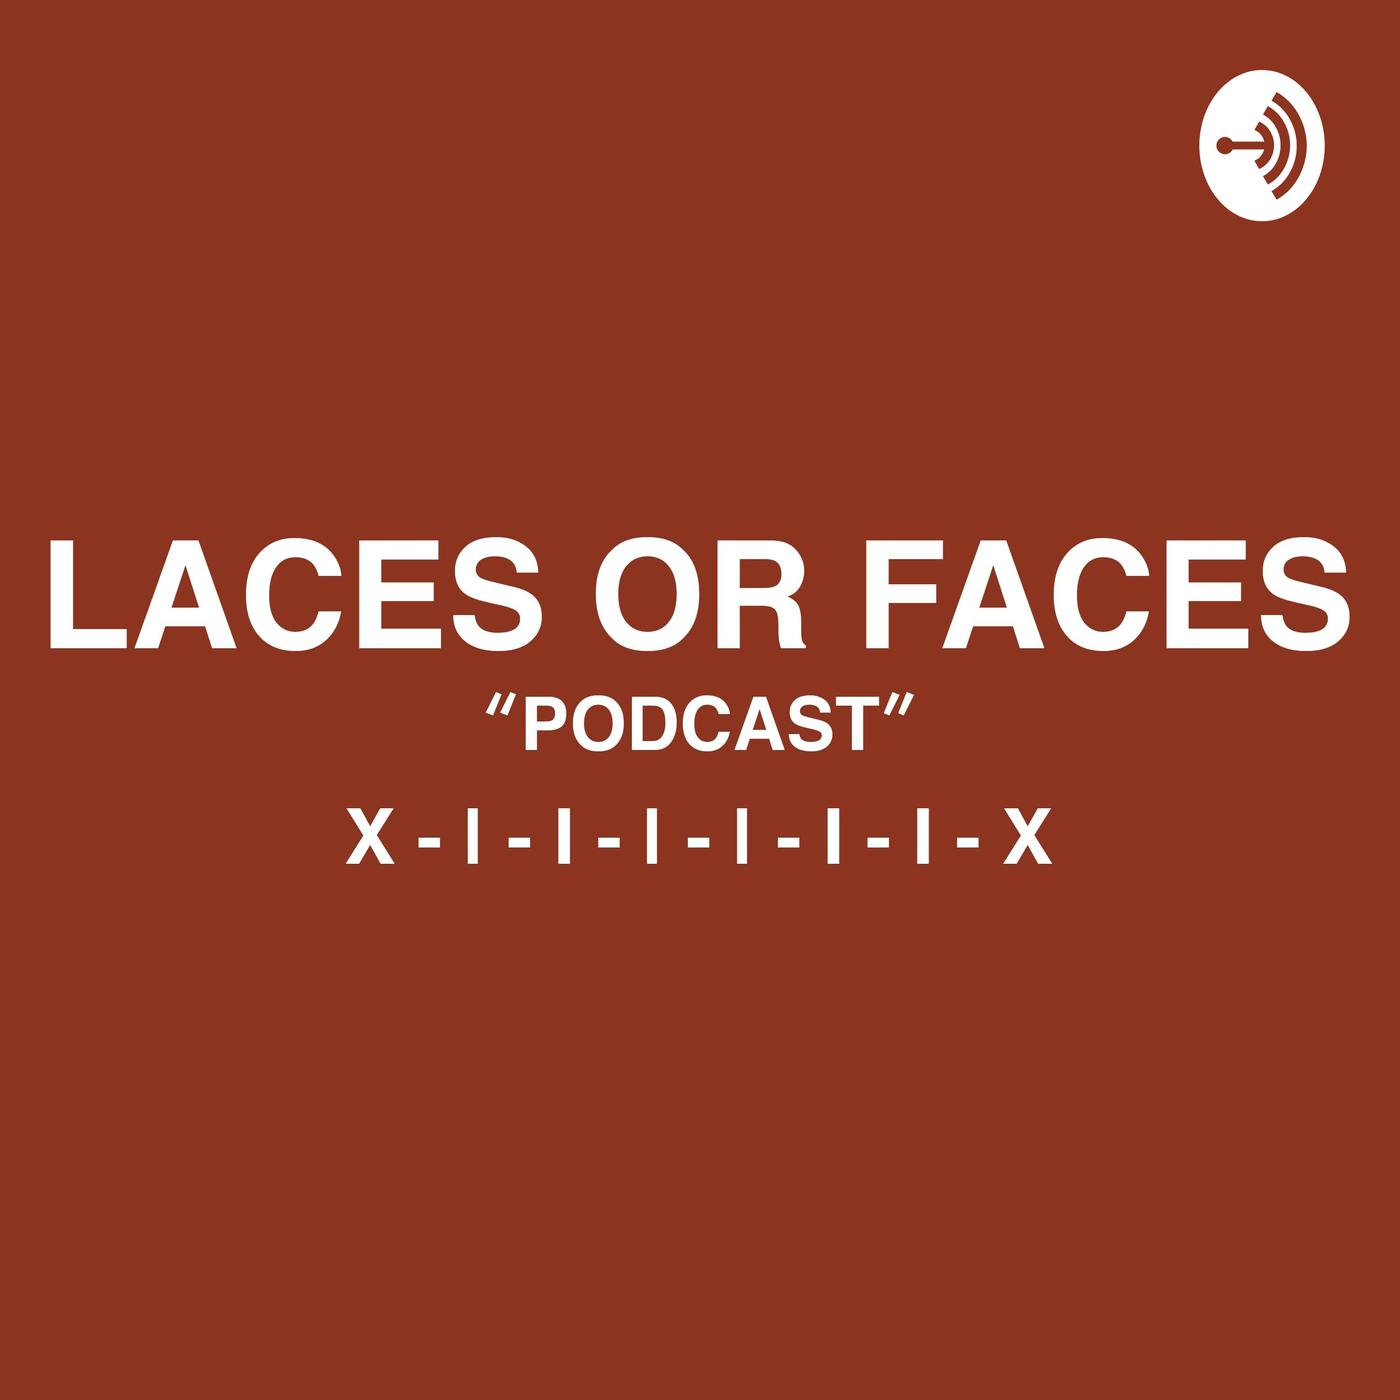 Laces Or Faces Football Podcast - Laces Or Faces | Listen Notes